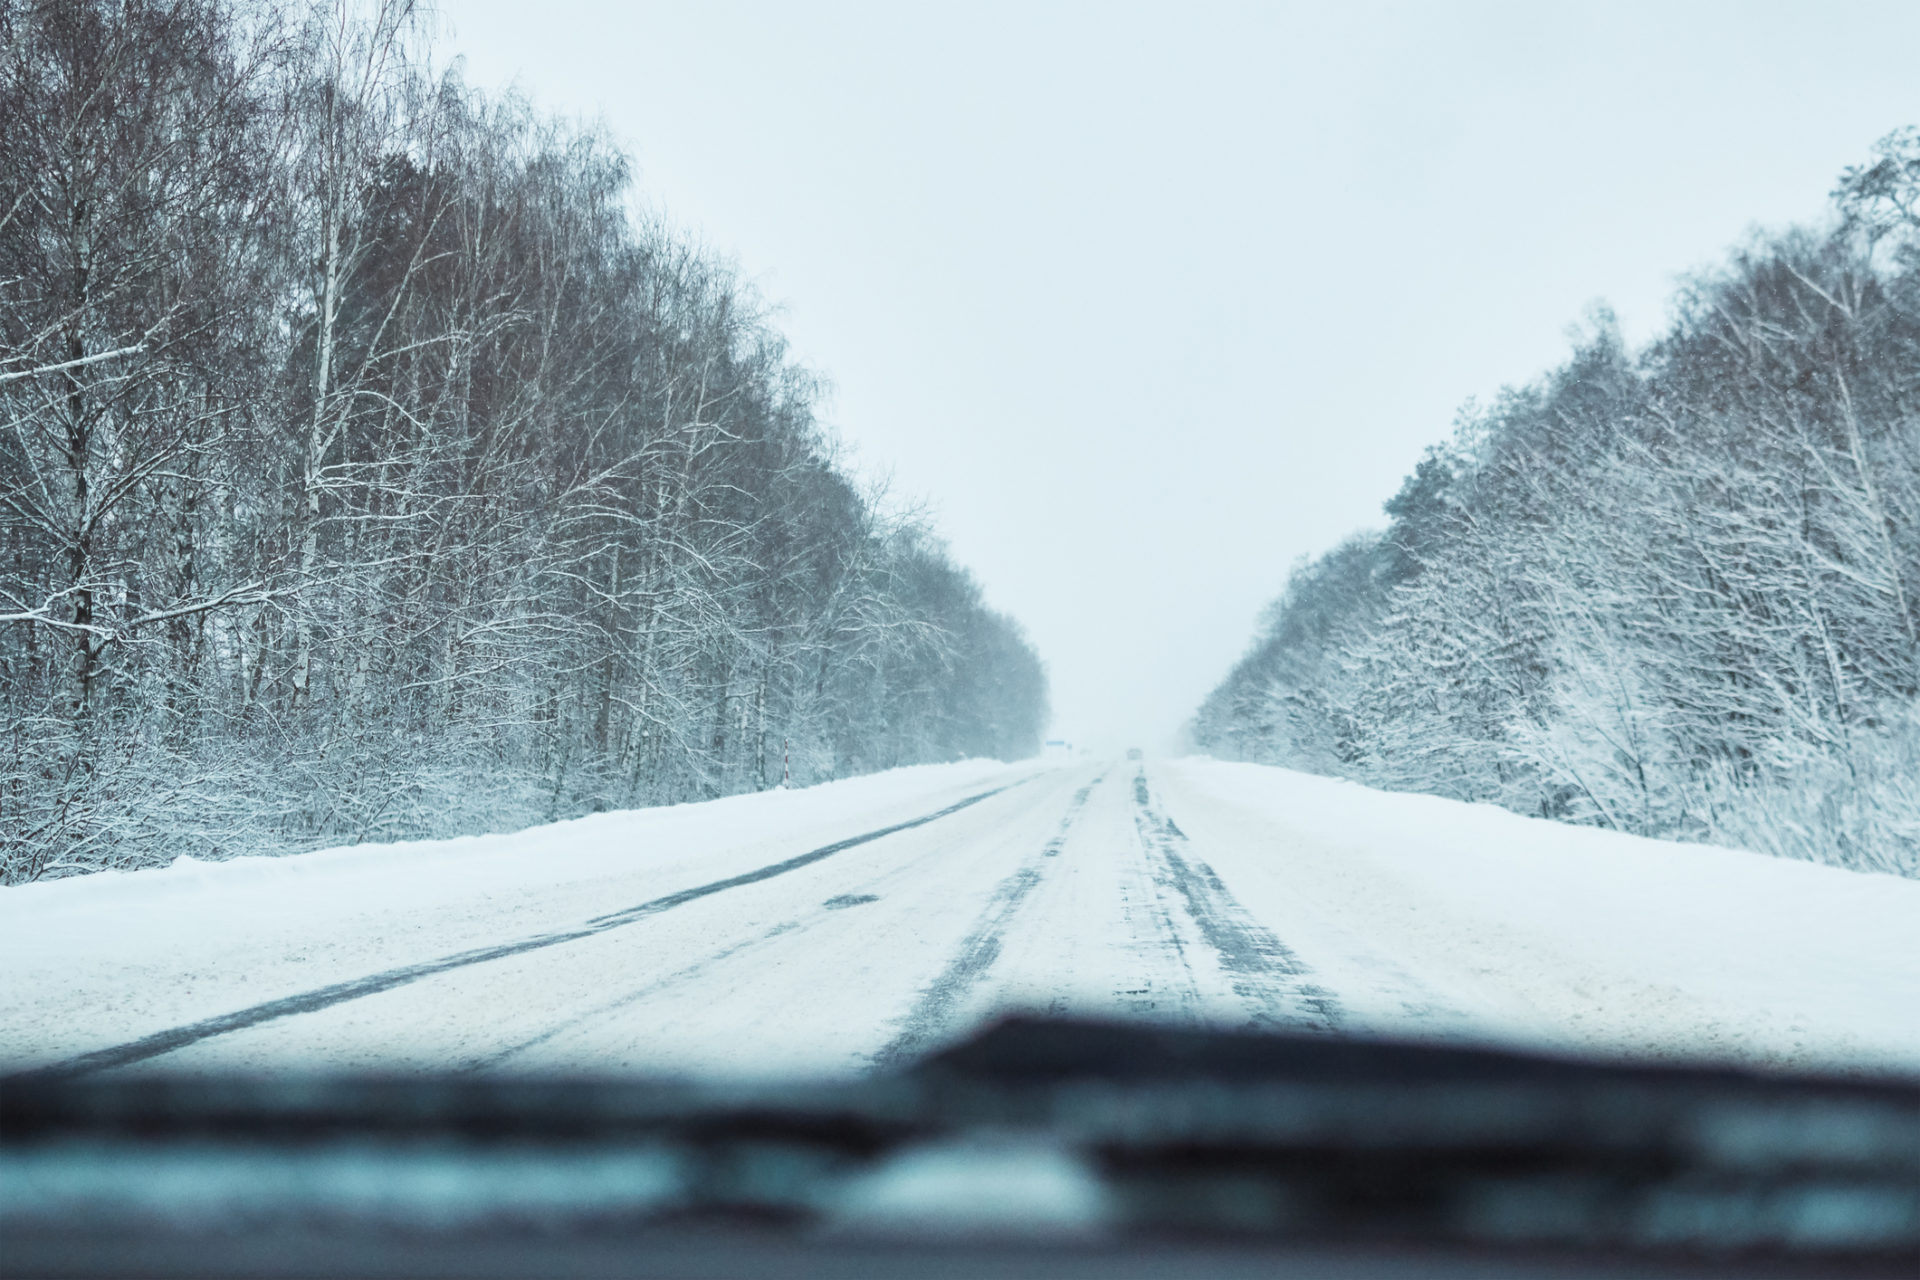 Winter accessories that protect your vehicle